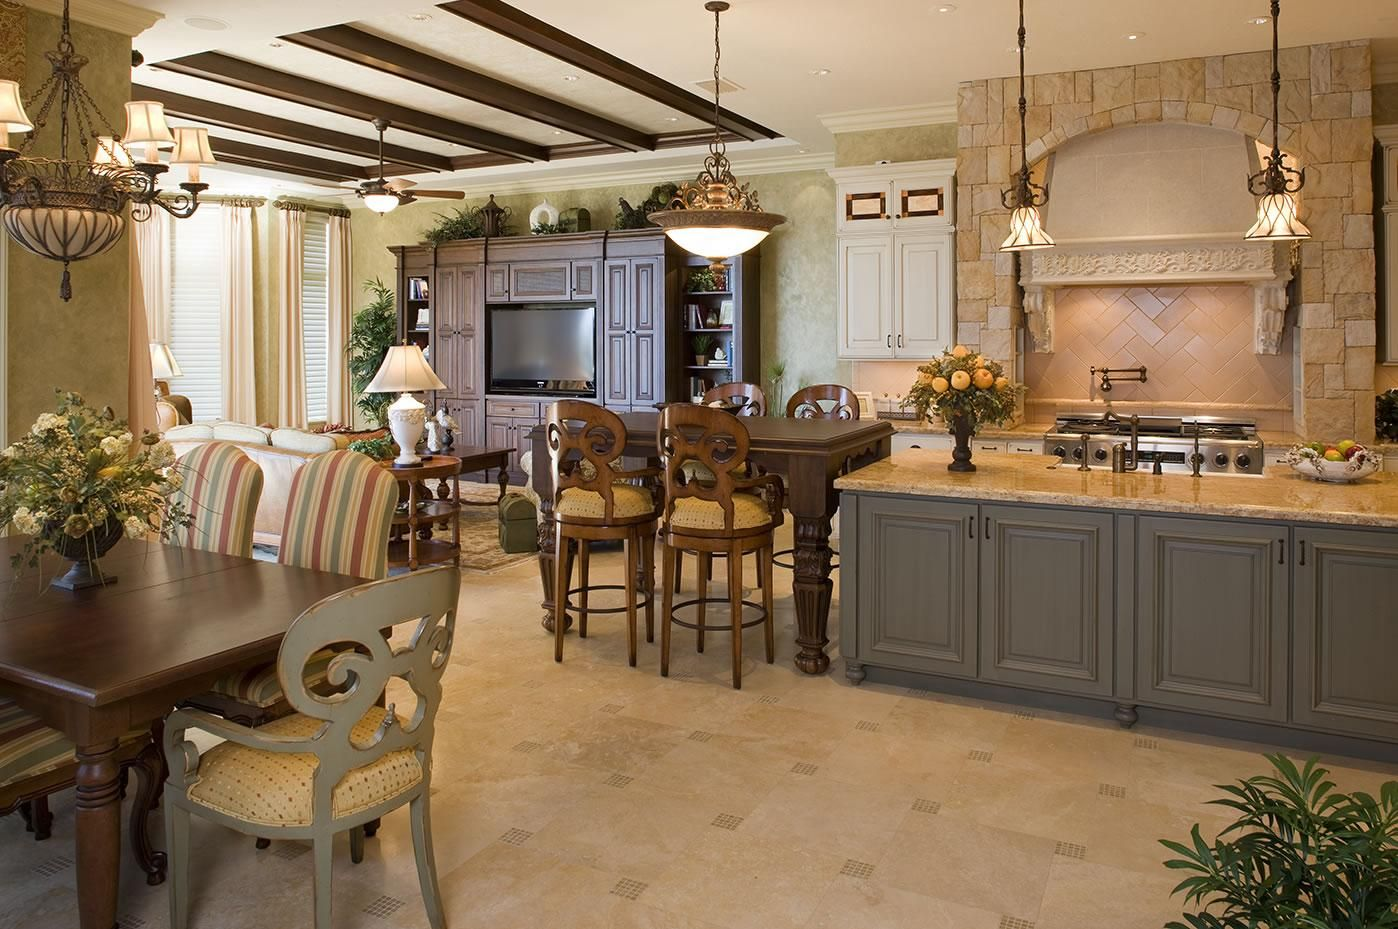 Mediterranean Style Kitchen Interior Design Ideas with Photos. Black wooden ceiling beams and warm sandy tones of decoration